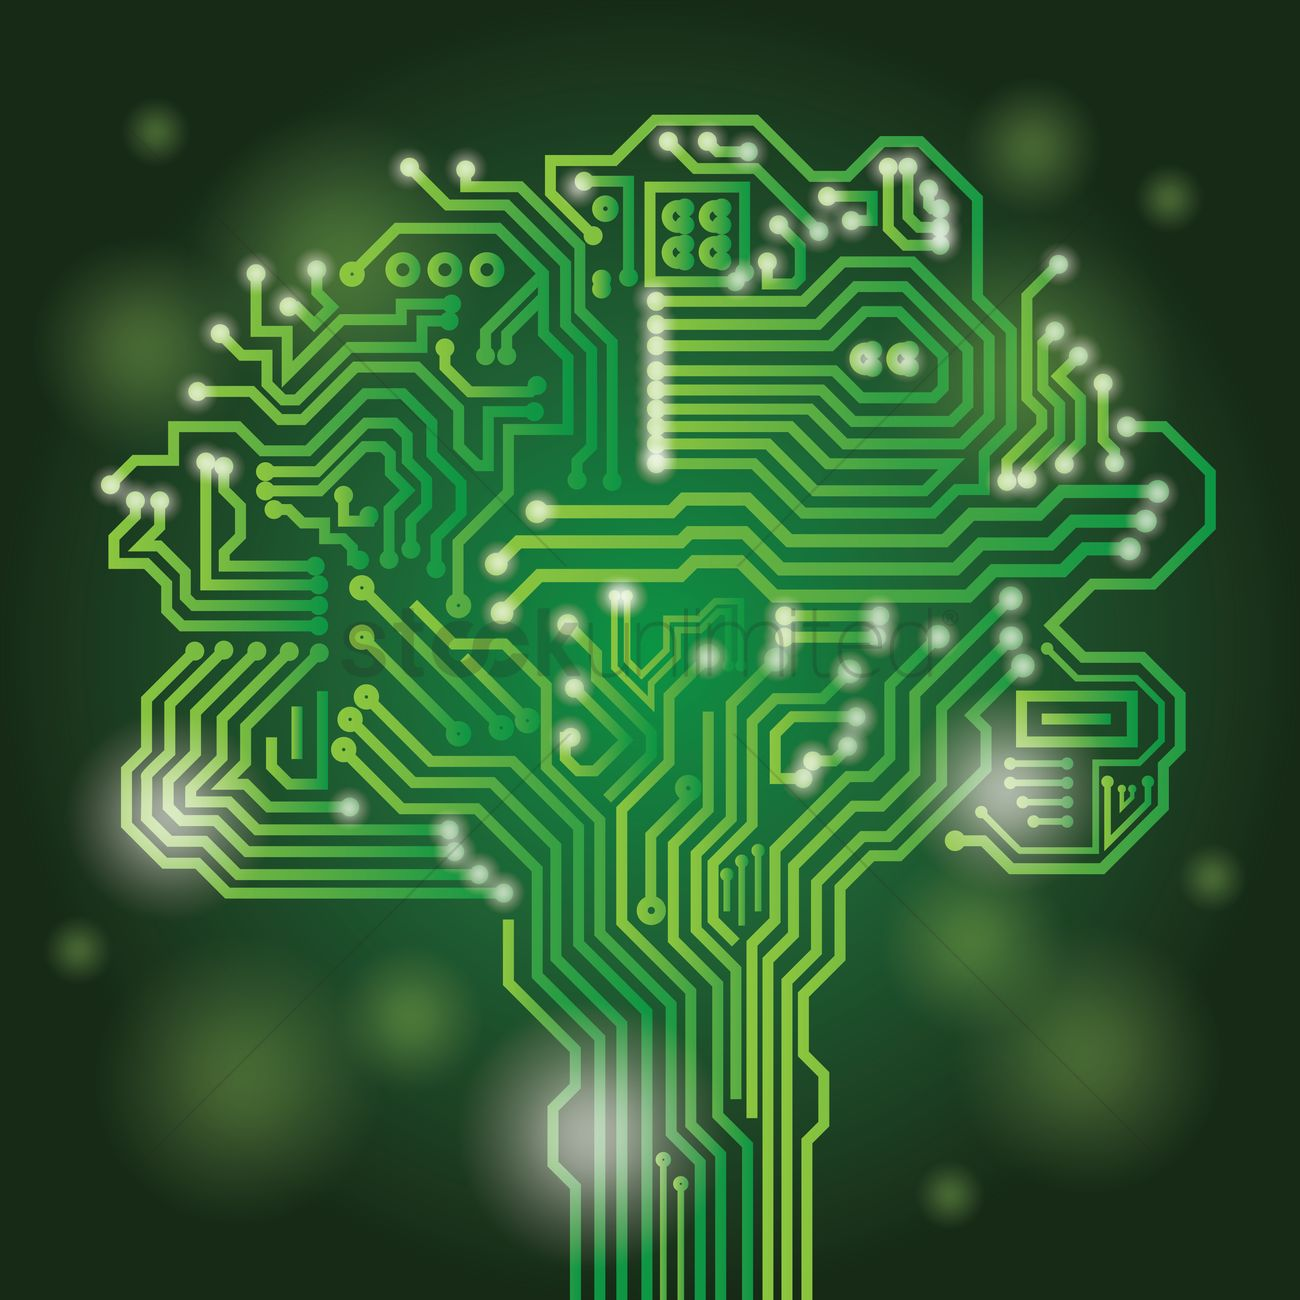 Circuit Board Tree Design Vector Image 1948517 Stockunlimited Electronic Graphic